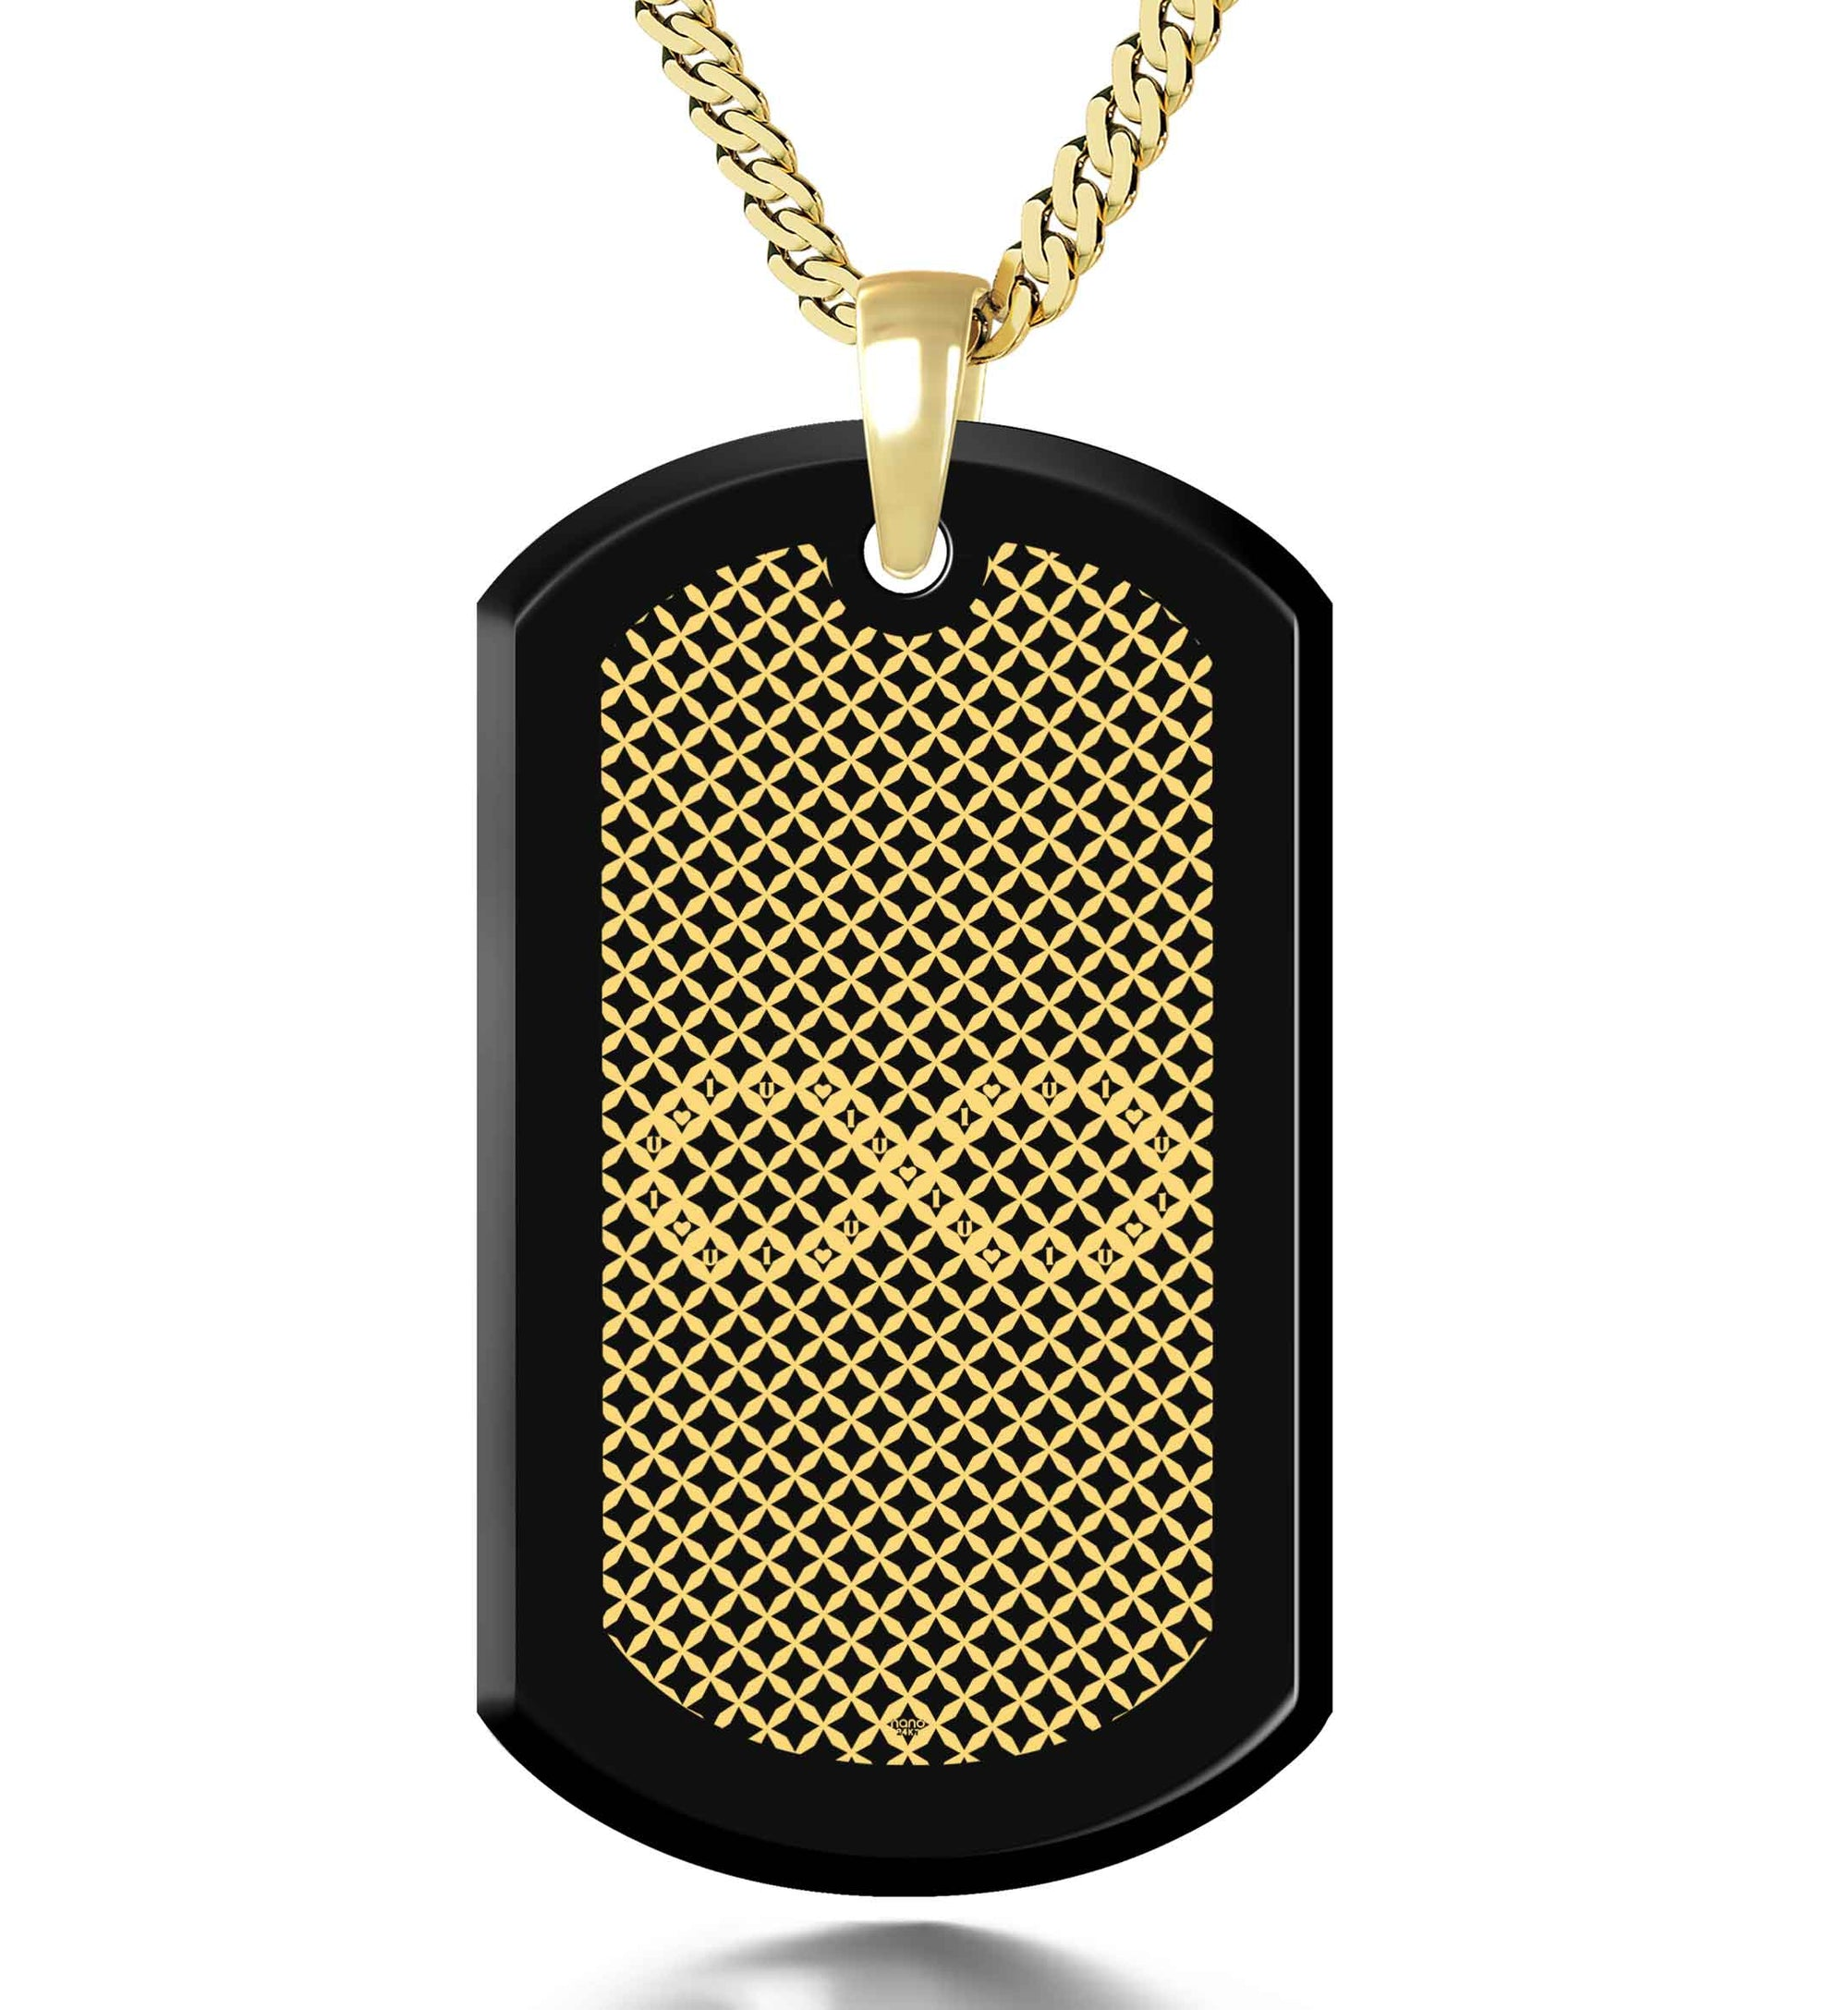 Men's Dog Tag Necklace Infinity Pendant 24k Gold Inscribed Onyx Stone